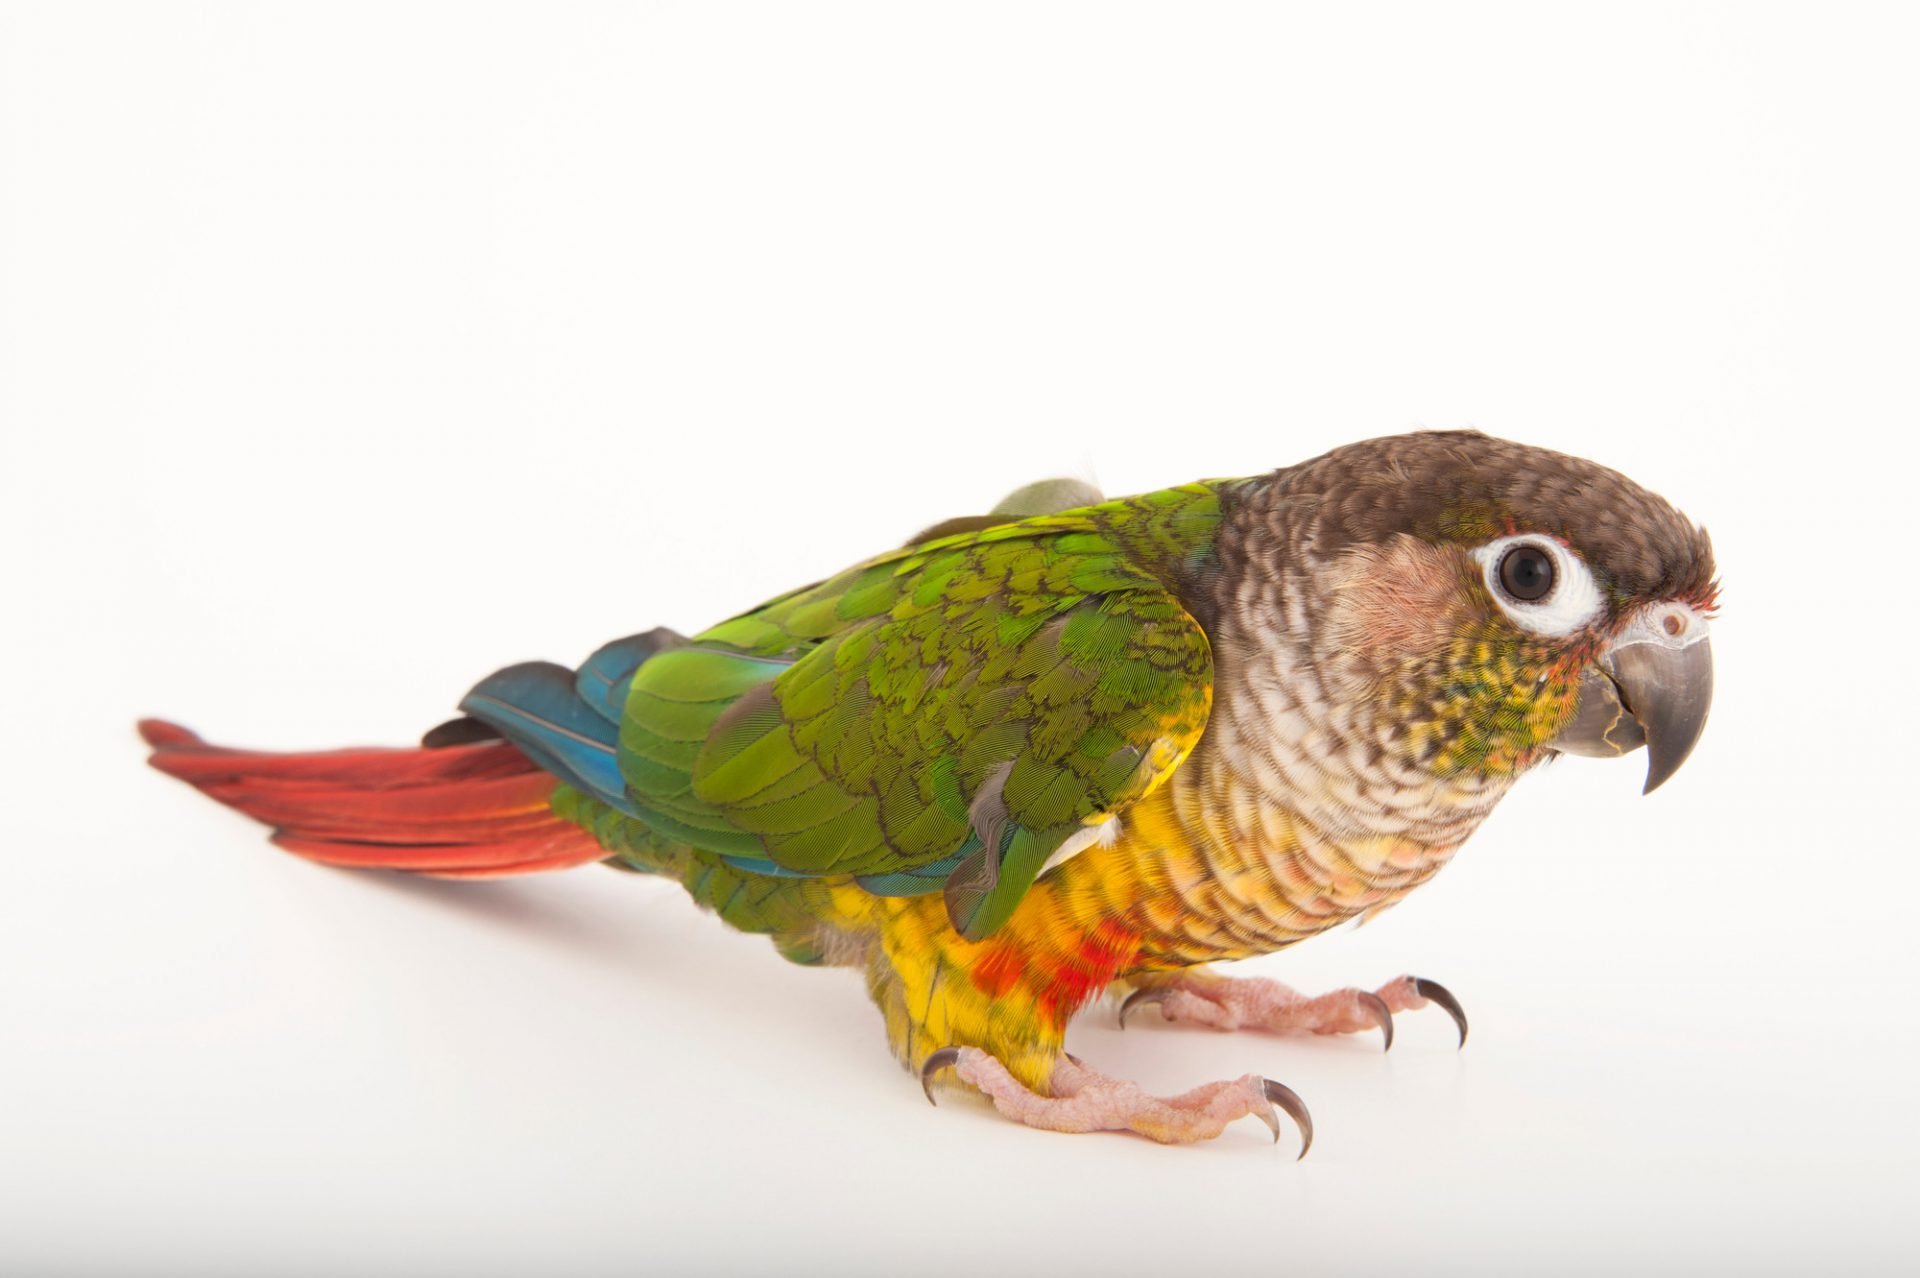 A green-cheeked conure or green-cheeked parakeet (Pyrrhura molinae) from the Gladys Porter Zoo in Brownsville, Texas.